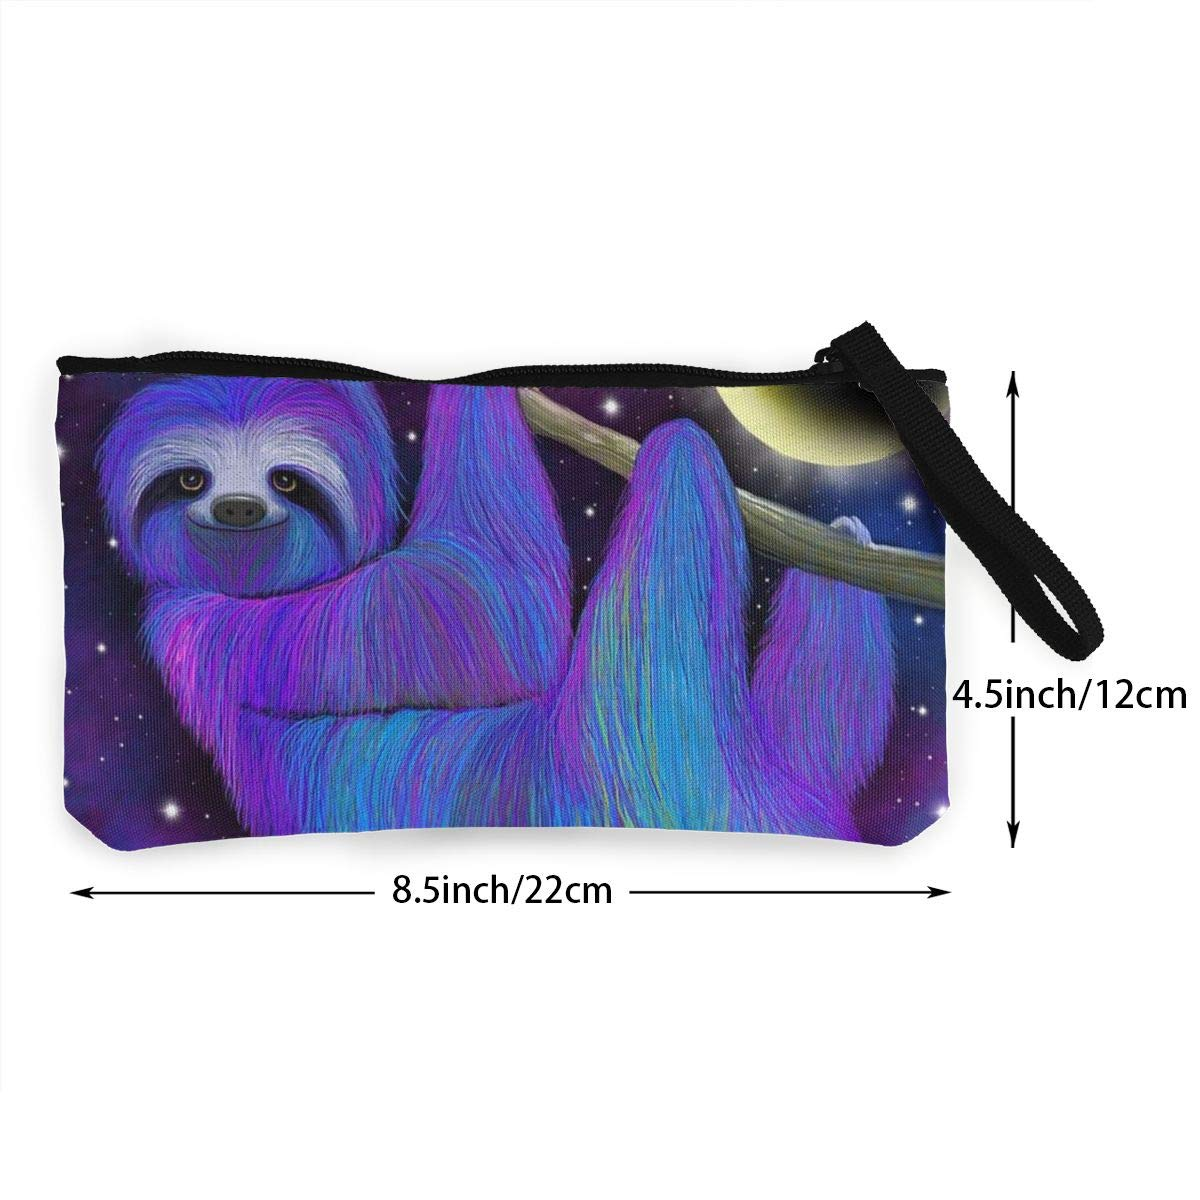 Make Up Bag,Cellphone Bag With Handle Sloth Moonlight Zipper Canvas Coin Purse Wallet